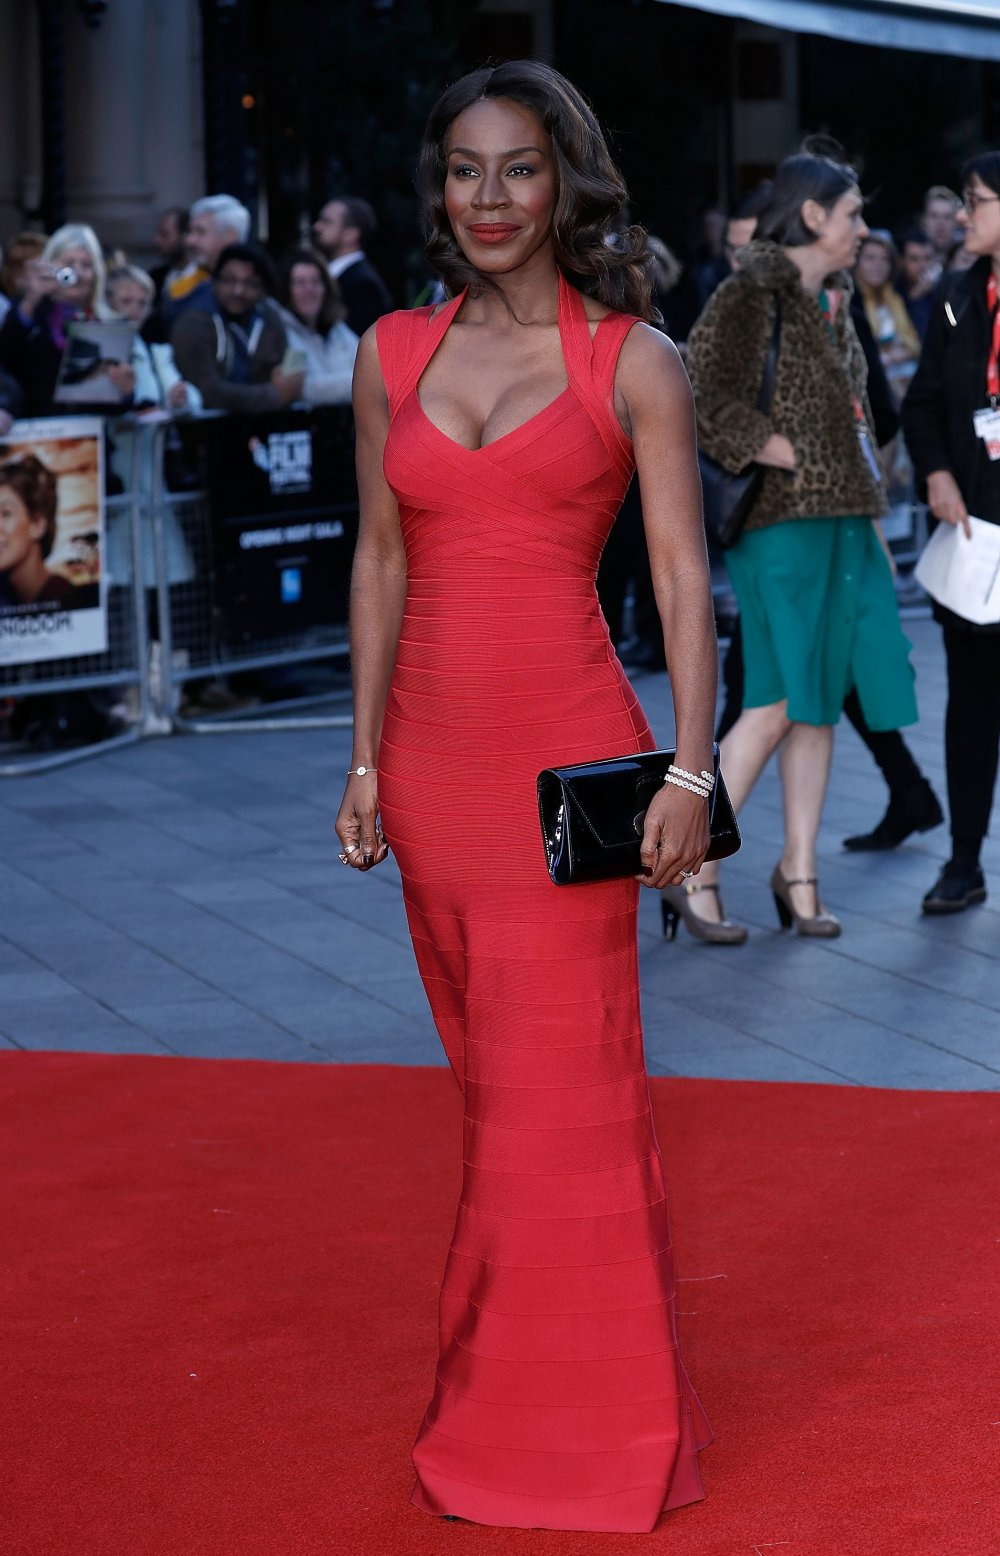 Director Amma Asante attends the Opening Night Gala screening of A United Kingdom at Odeon Leicester Square